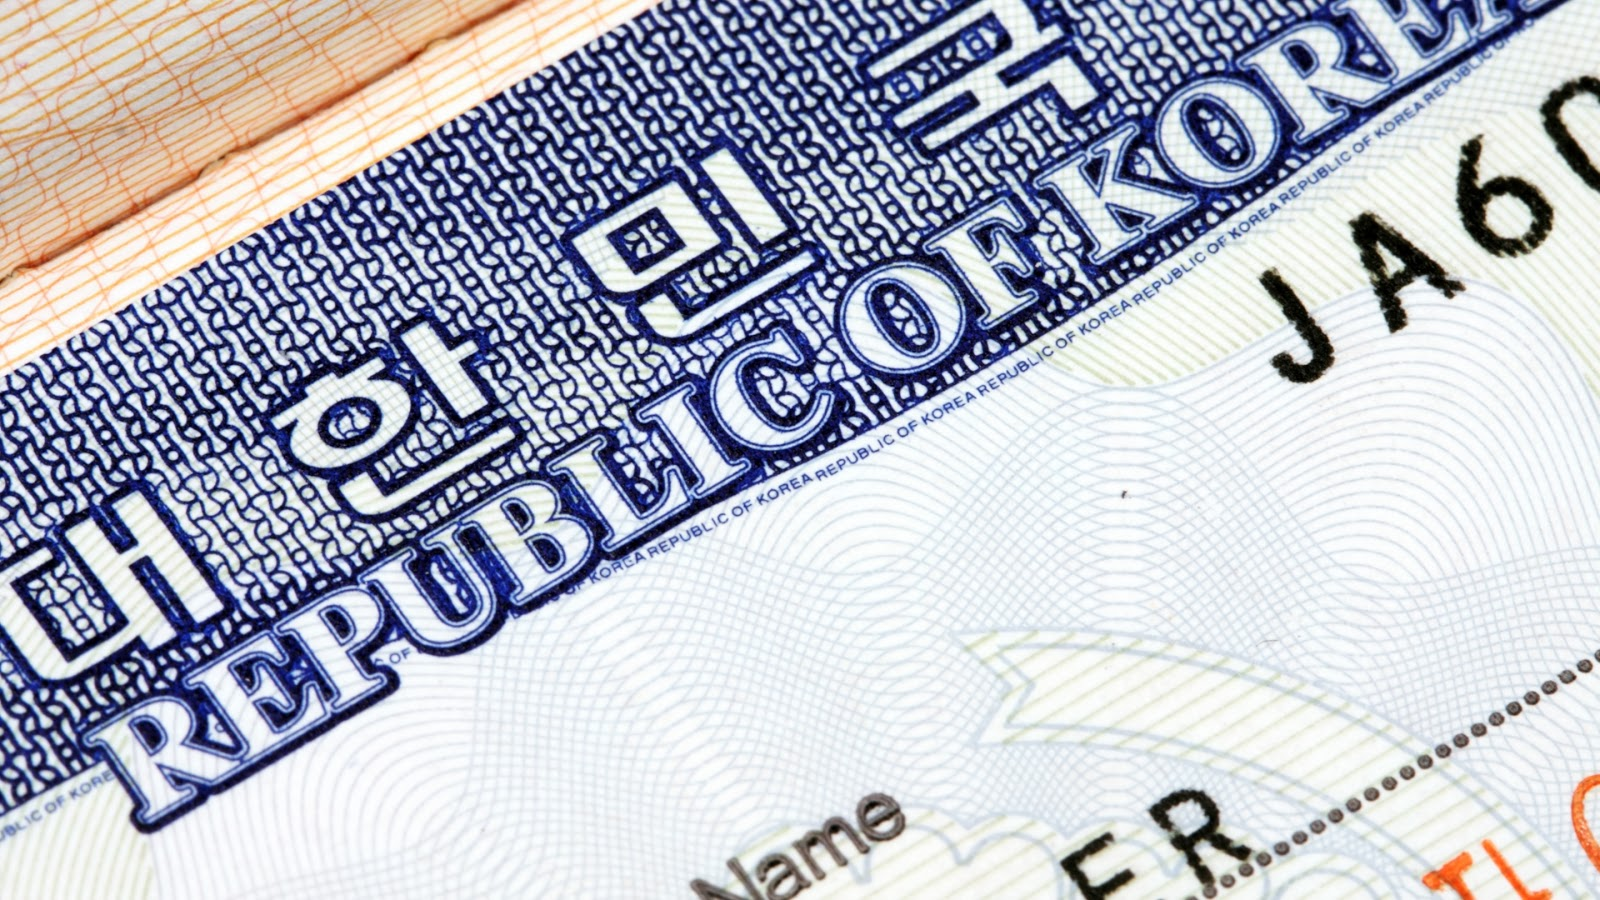 Find out what visa you need to enter the country